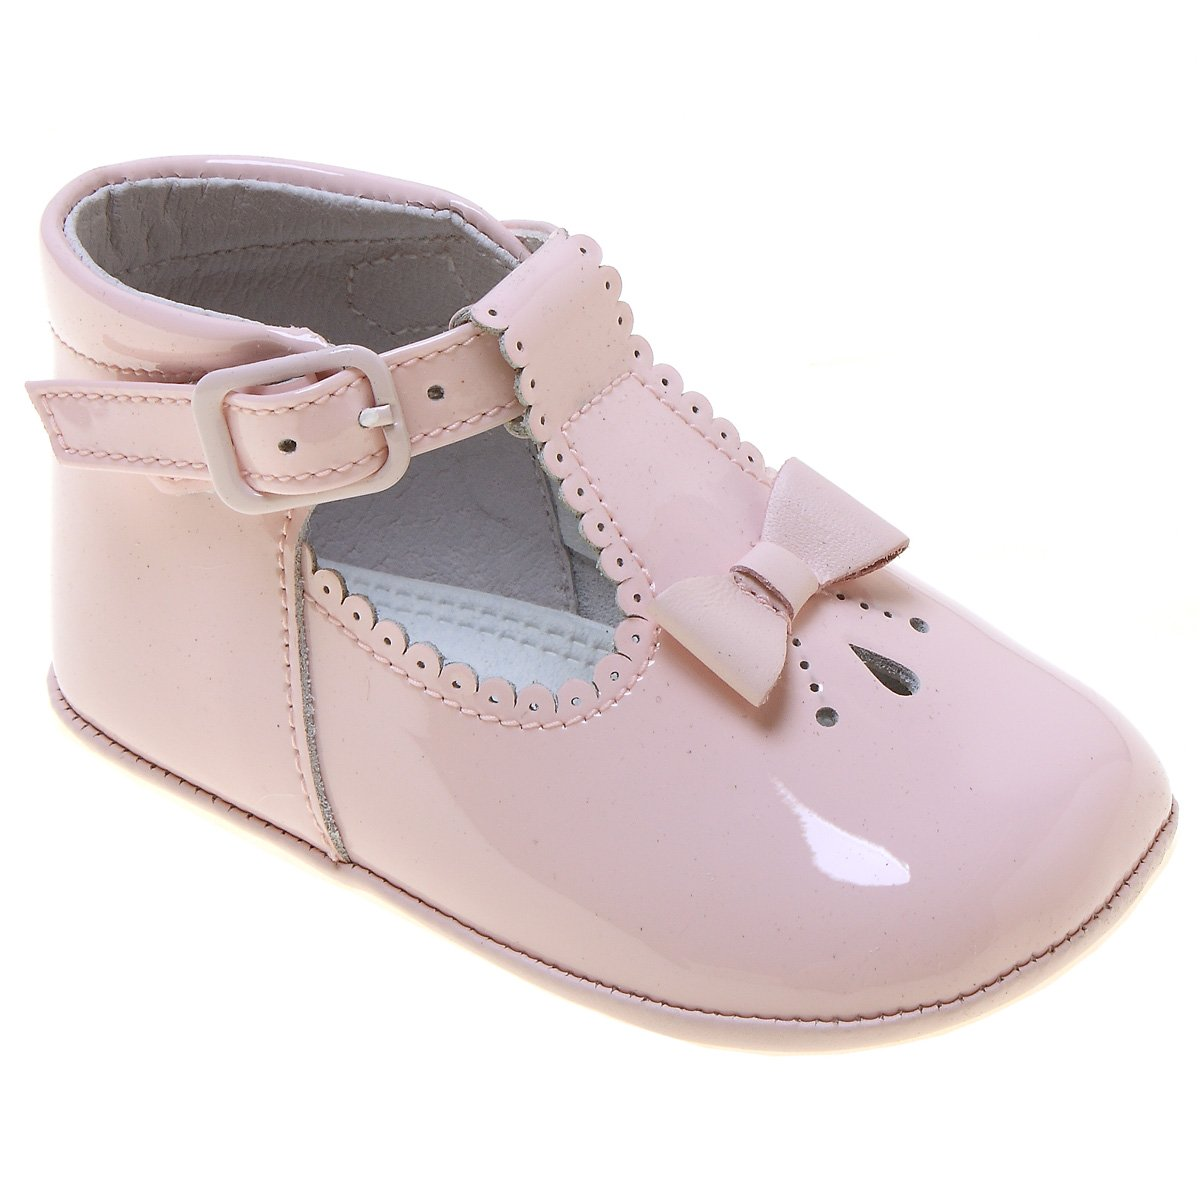 Free shipping on best-dressed baby girls' shoes at ajaykumarchejarla.ml Shop for sandals, Mary Janes, flats and more. Totally free shipping & returns.